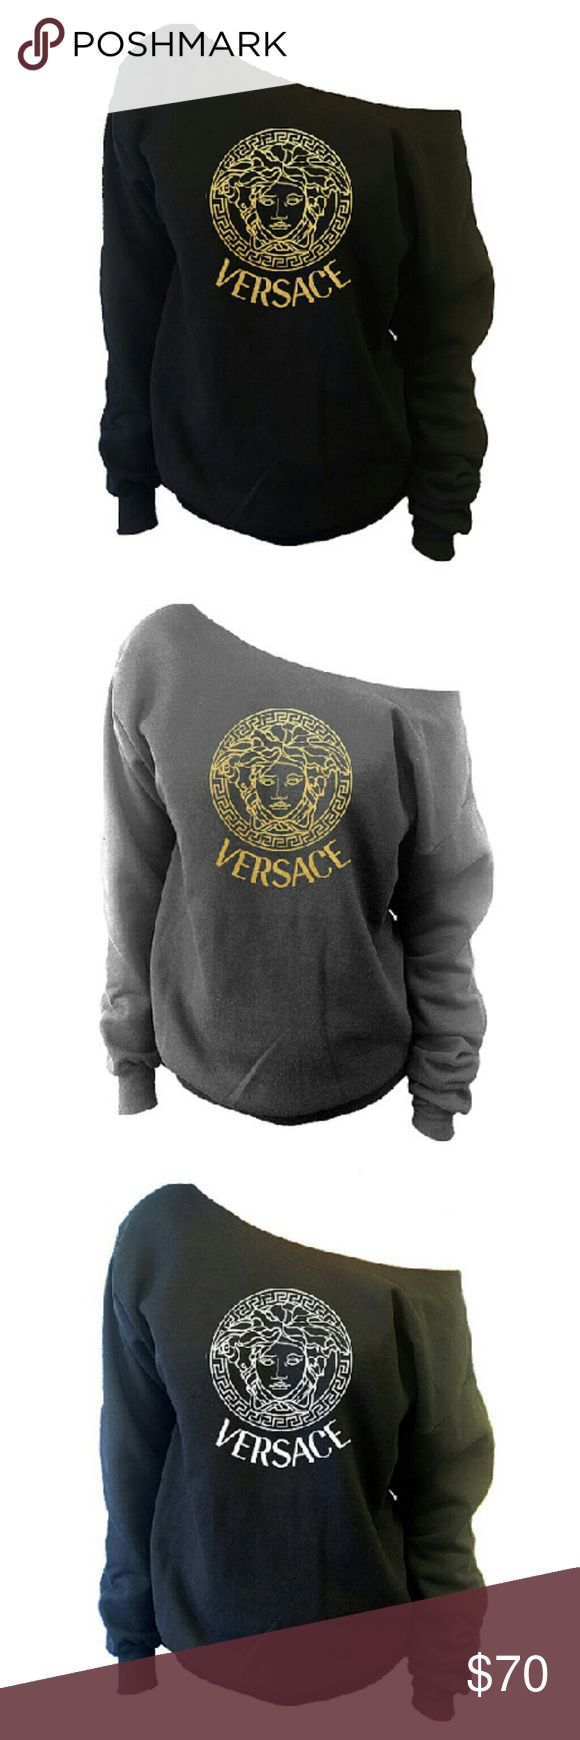 """Versce Shirt .Off The shoulder slouchy oversized. Versace Shirt 